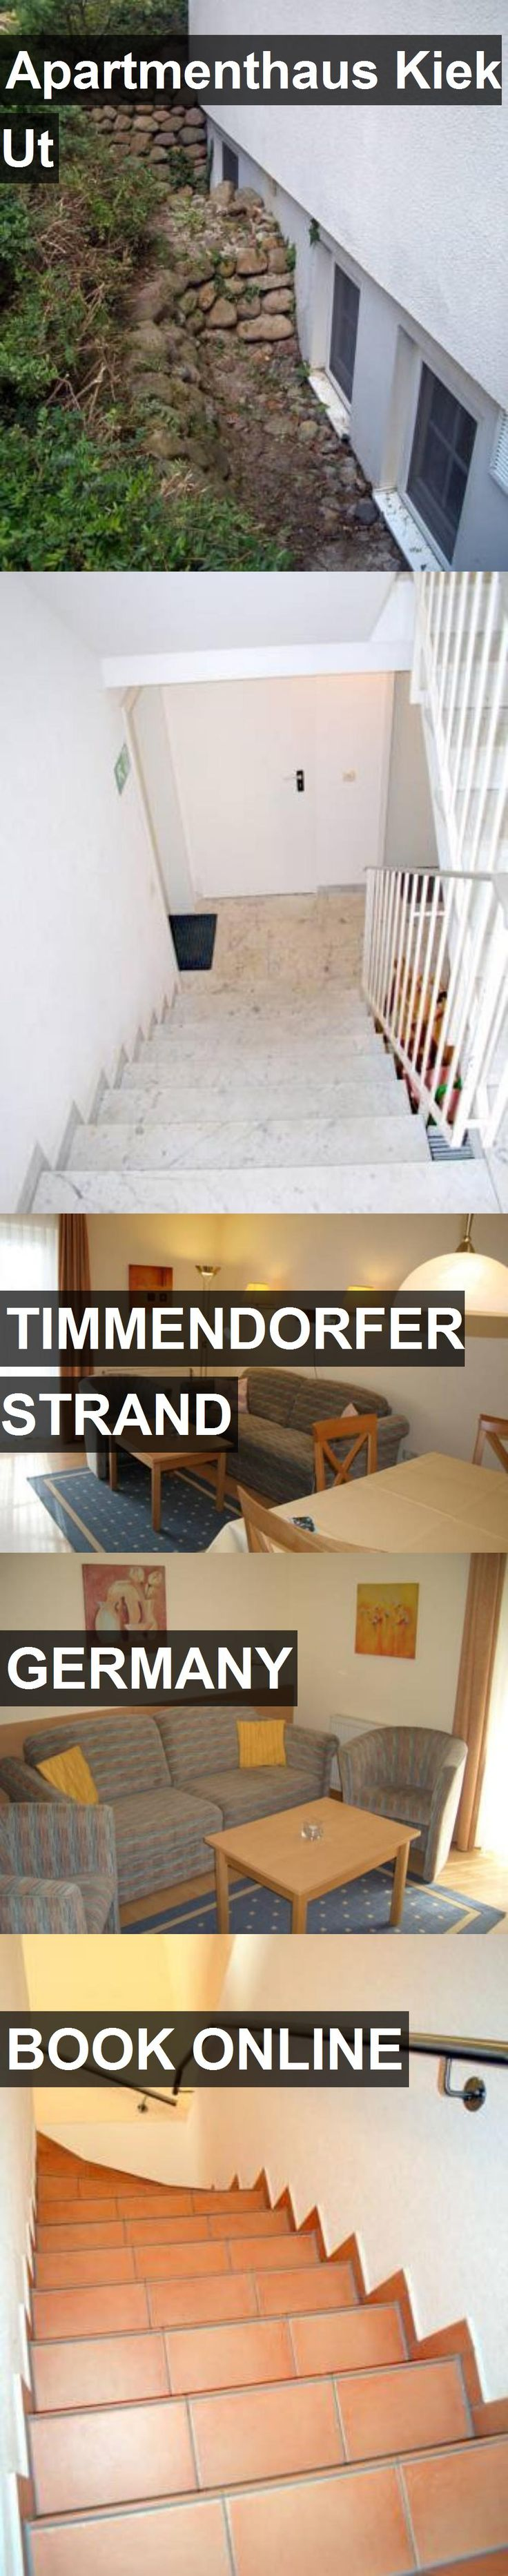 Apartmenthaus Kiek Ut in Timmendorfer Strand, Germany. For more information, photos, reviews and best prices please follow the link. #Germany #TimmendorferStrand #travel #vacation #apartment